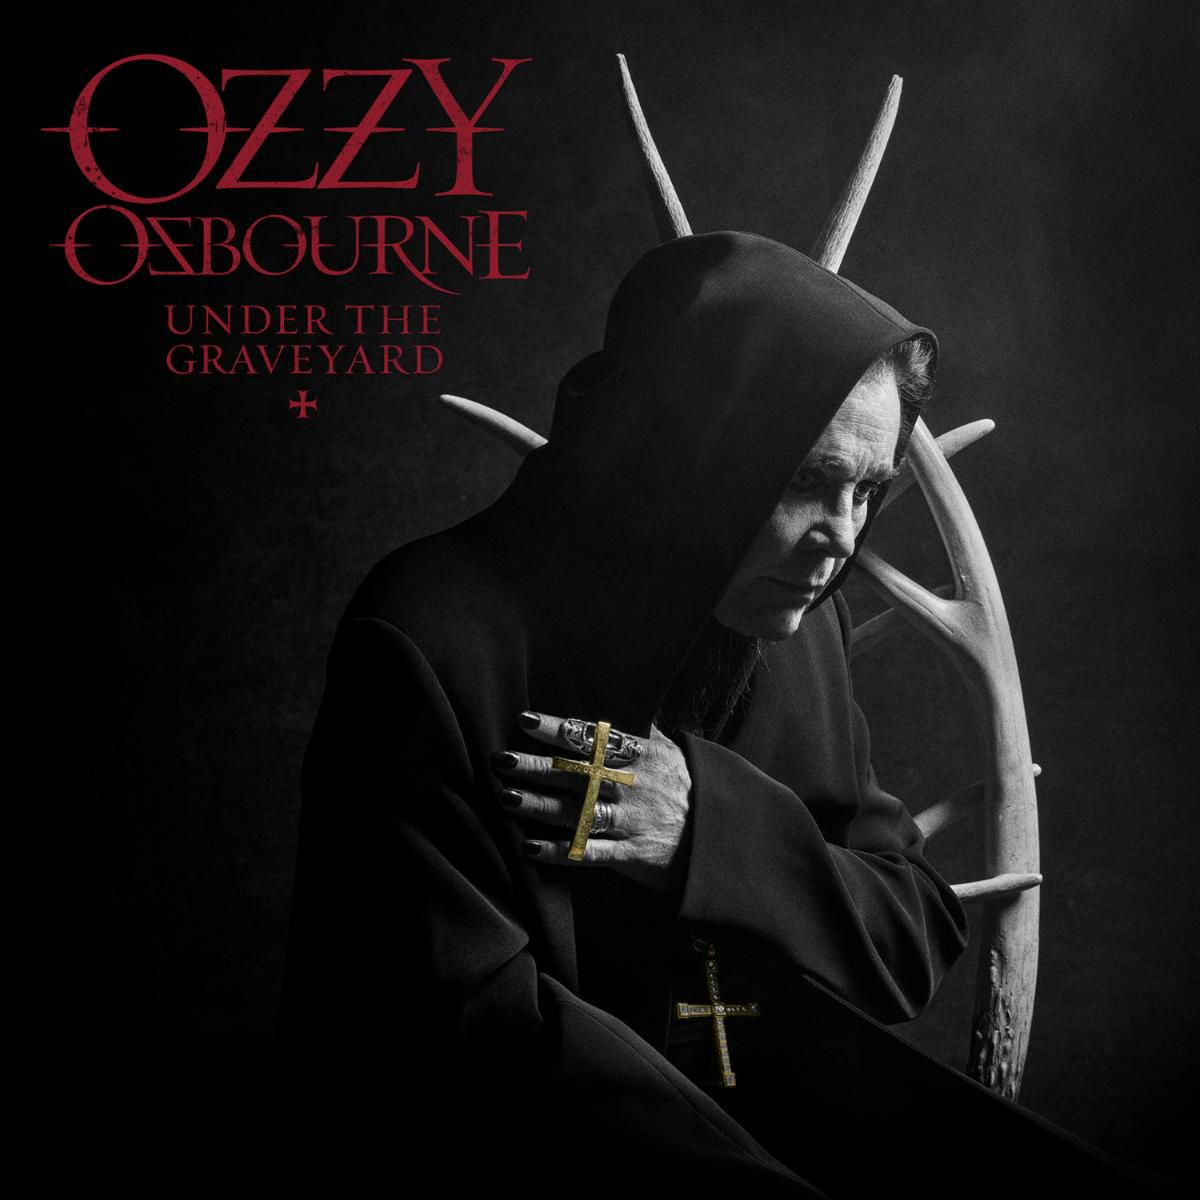 CHRONIQUE DU NOUVEL ALBUM D'OZZY : THE BATMAN ALWAYS MOVES ME AS MUCH.....